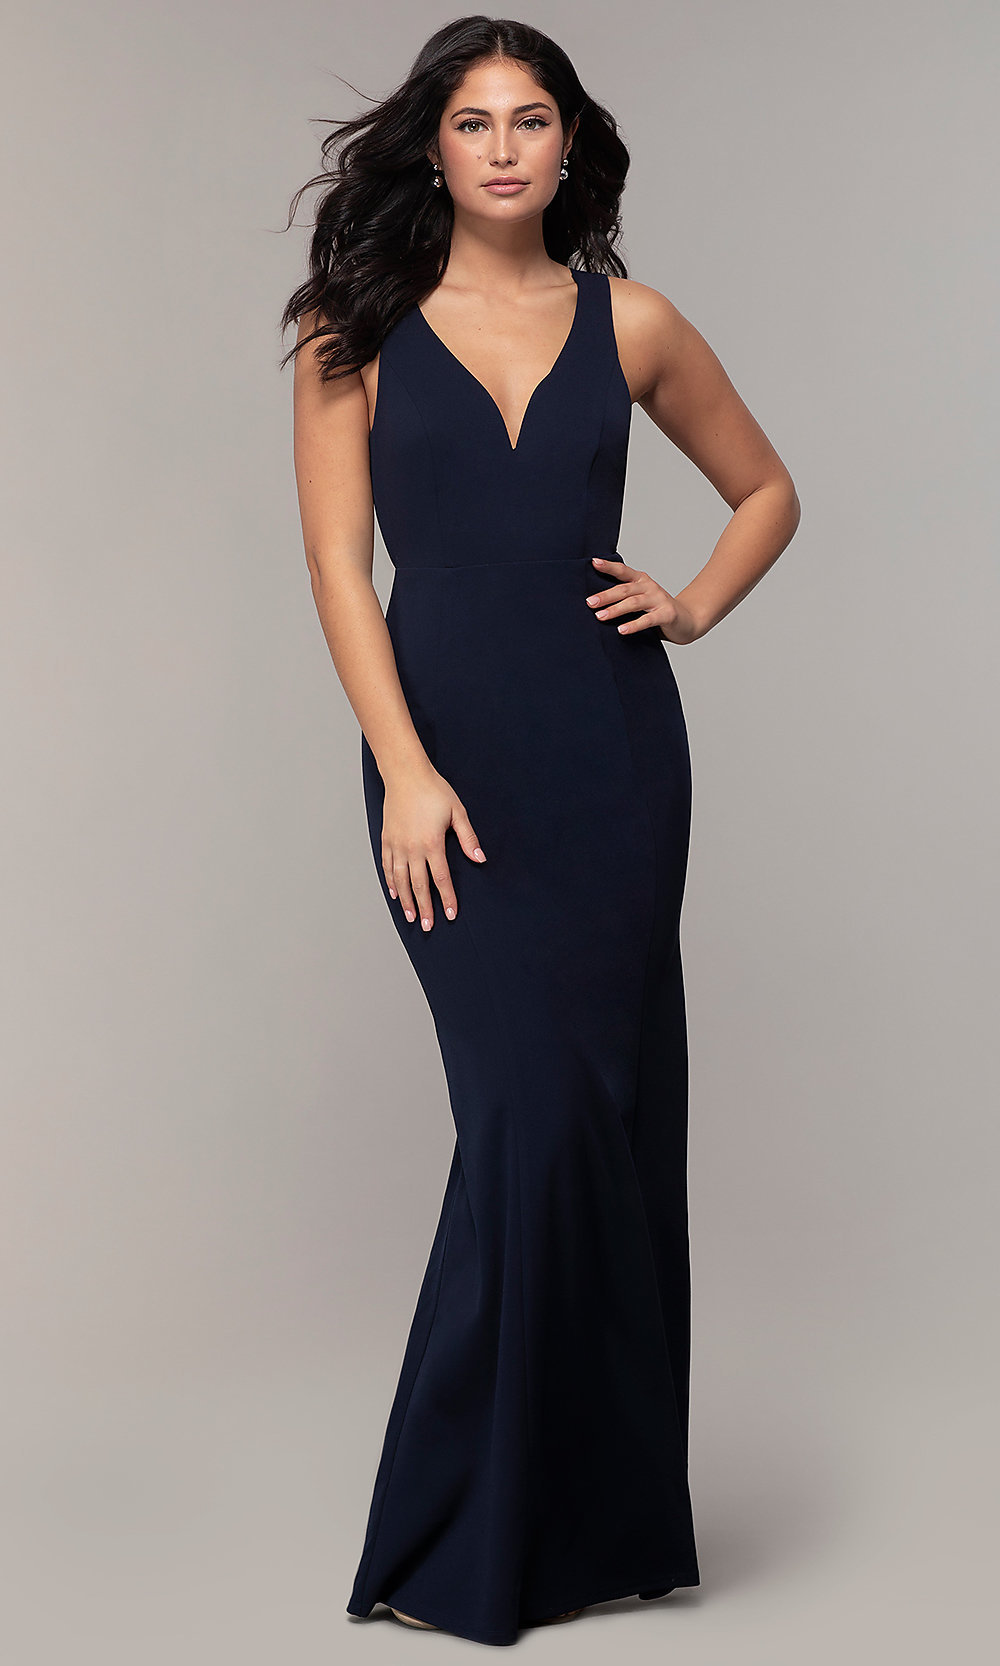 b3a939df0e ... mermaid v-neck prom dress by Simply. Style  MCR-. Tap to expand